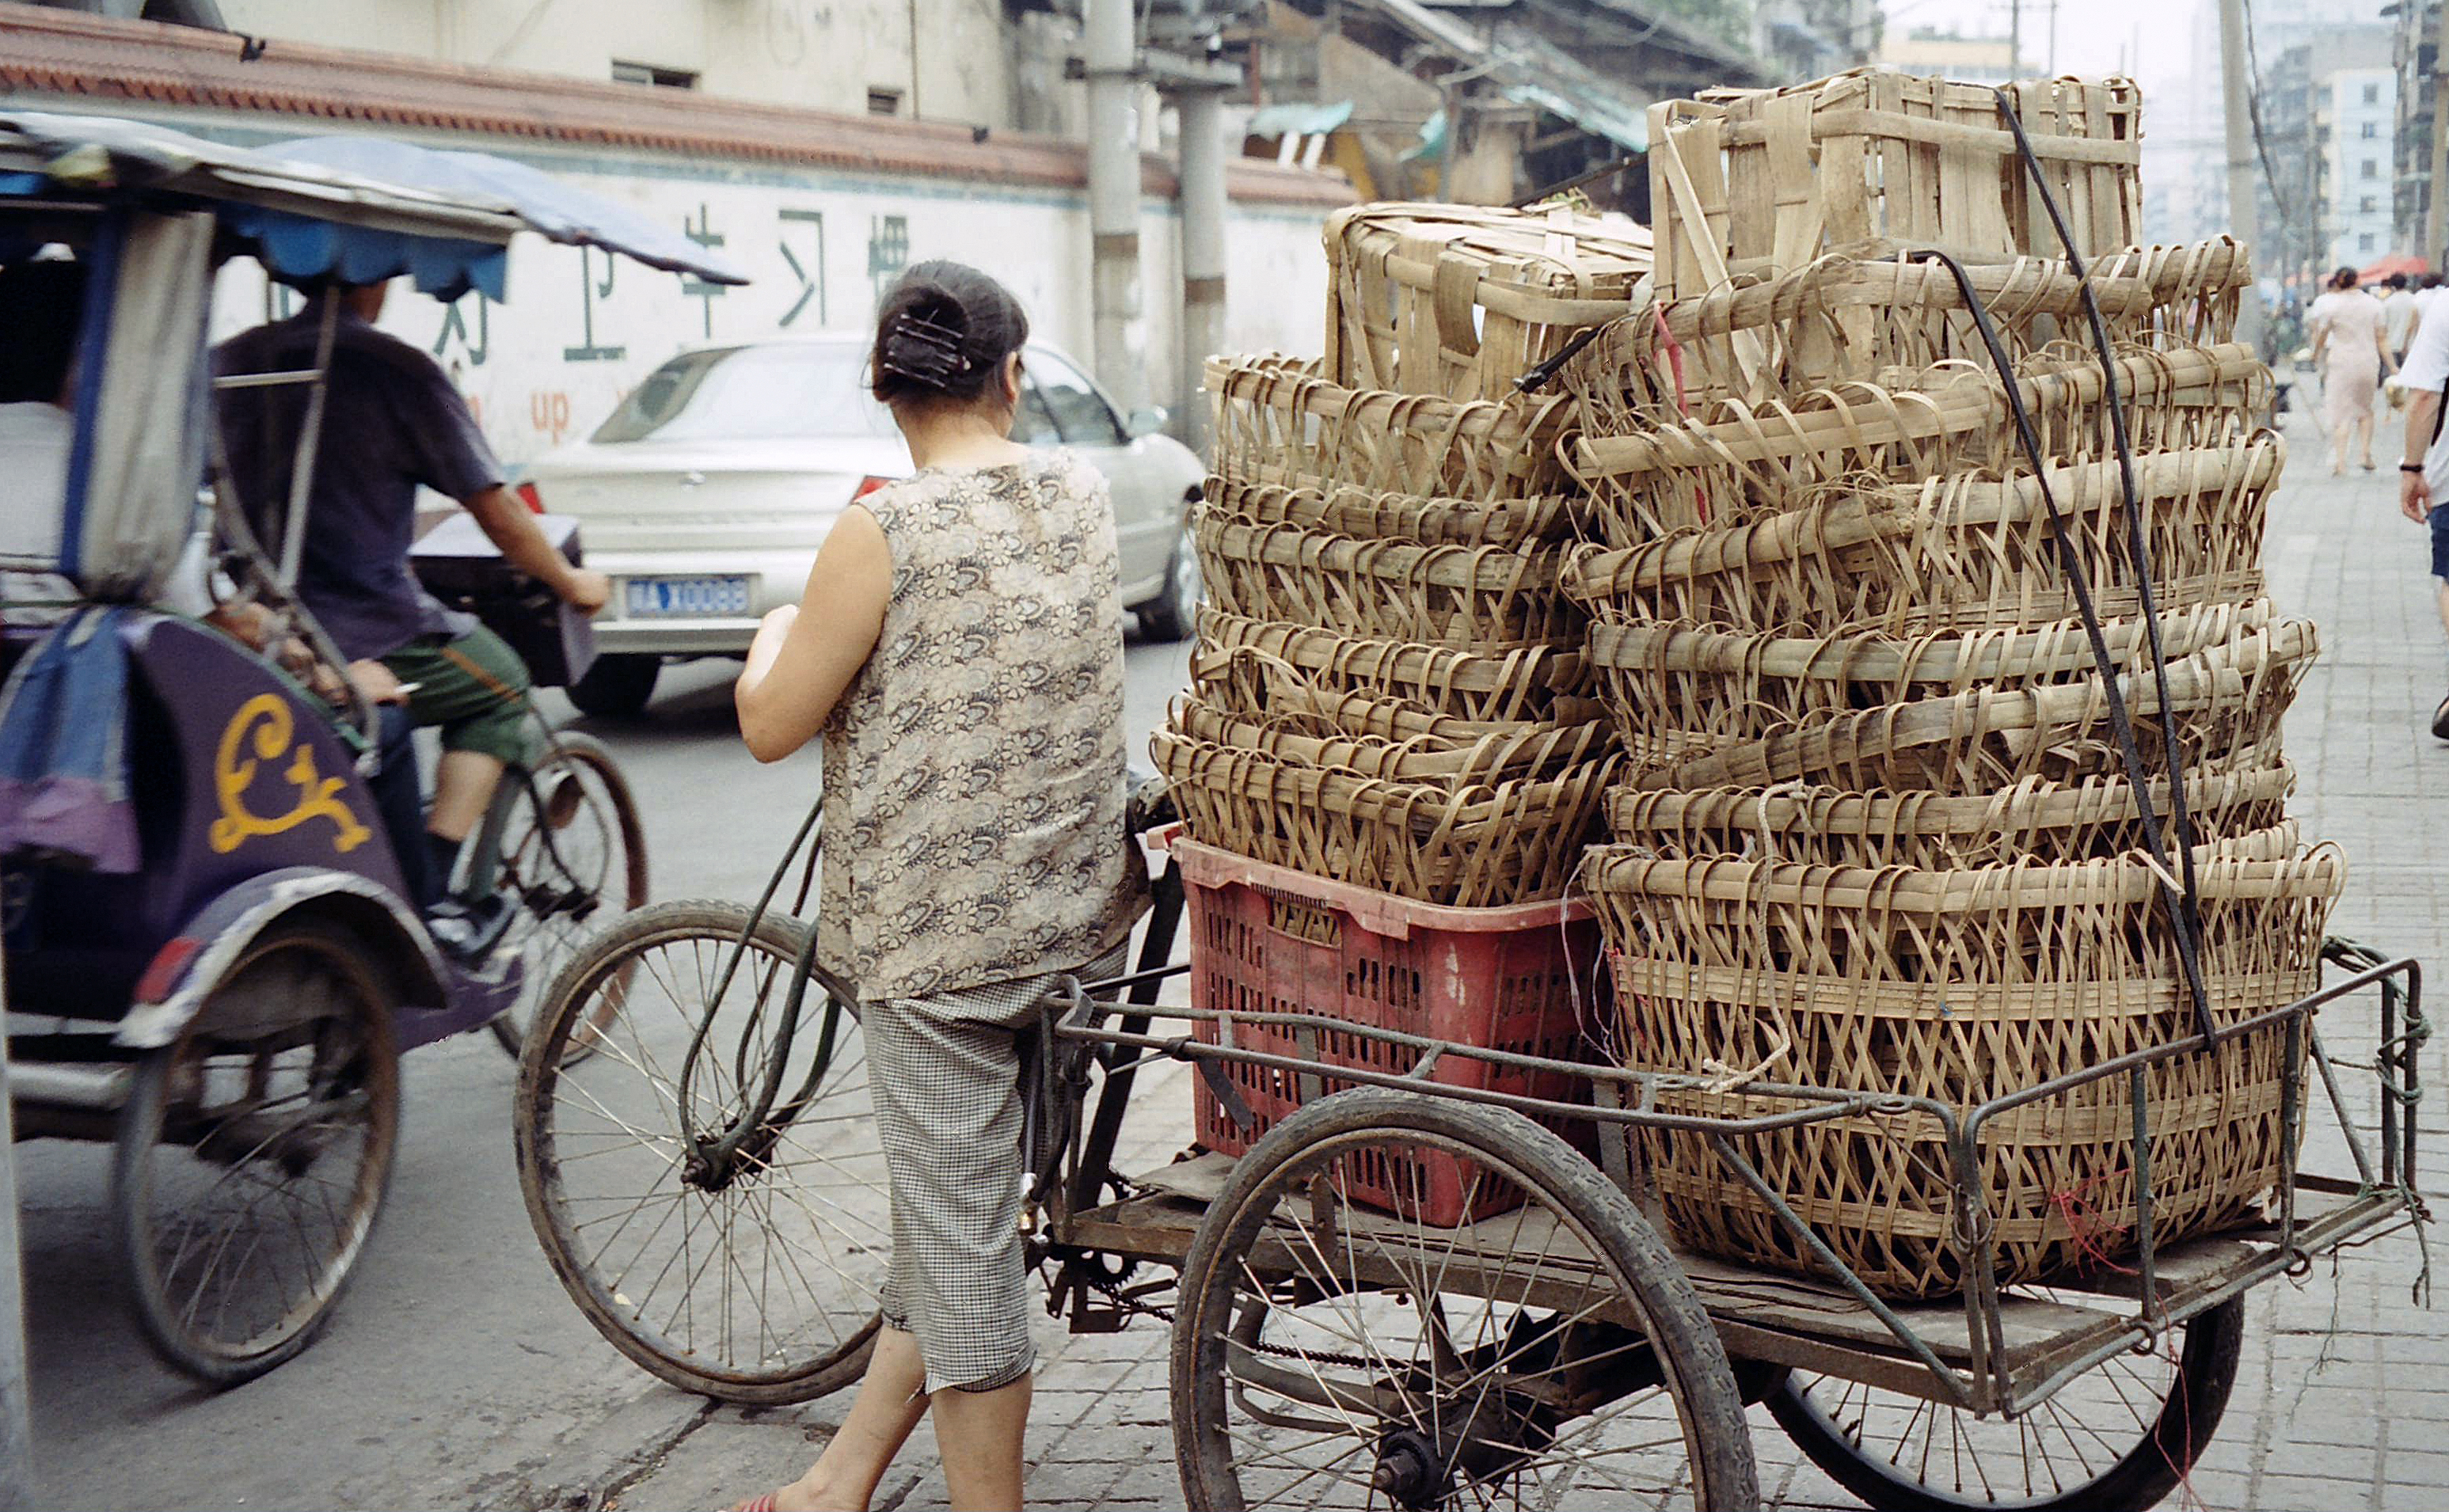 tricycle and baskets, Chengdu China.jpg